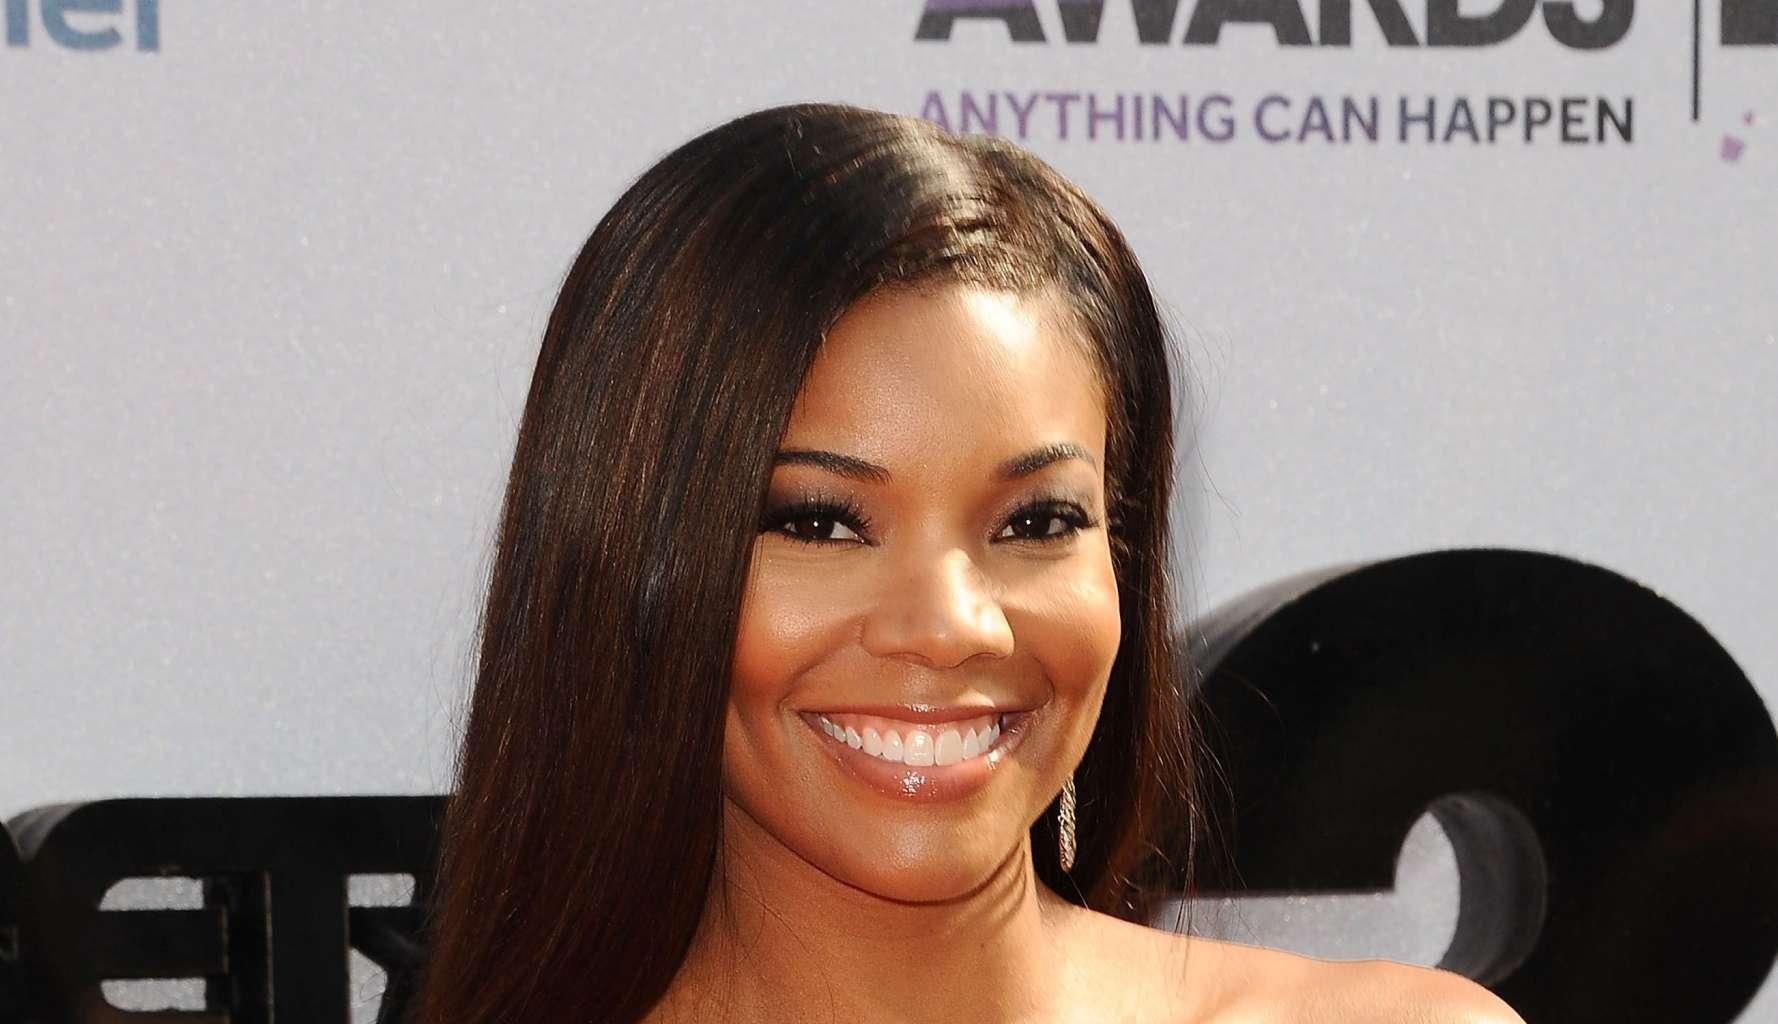 Gabrielle Union's Latest Video Has Fans Laughing - Check It Out Here